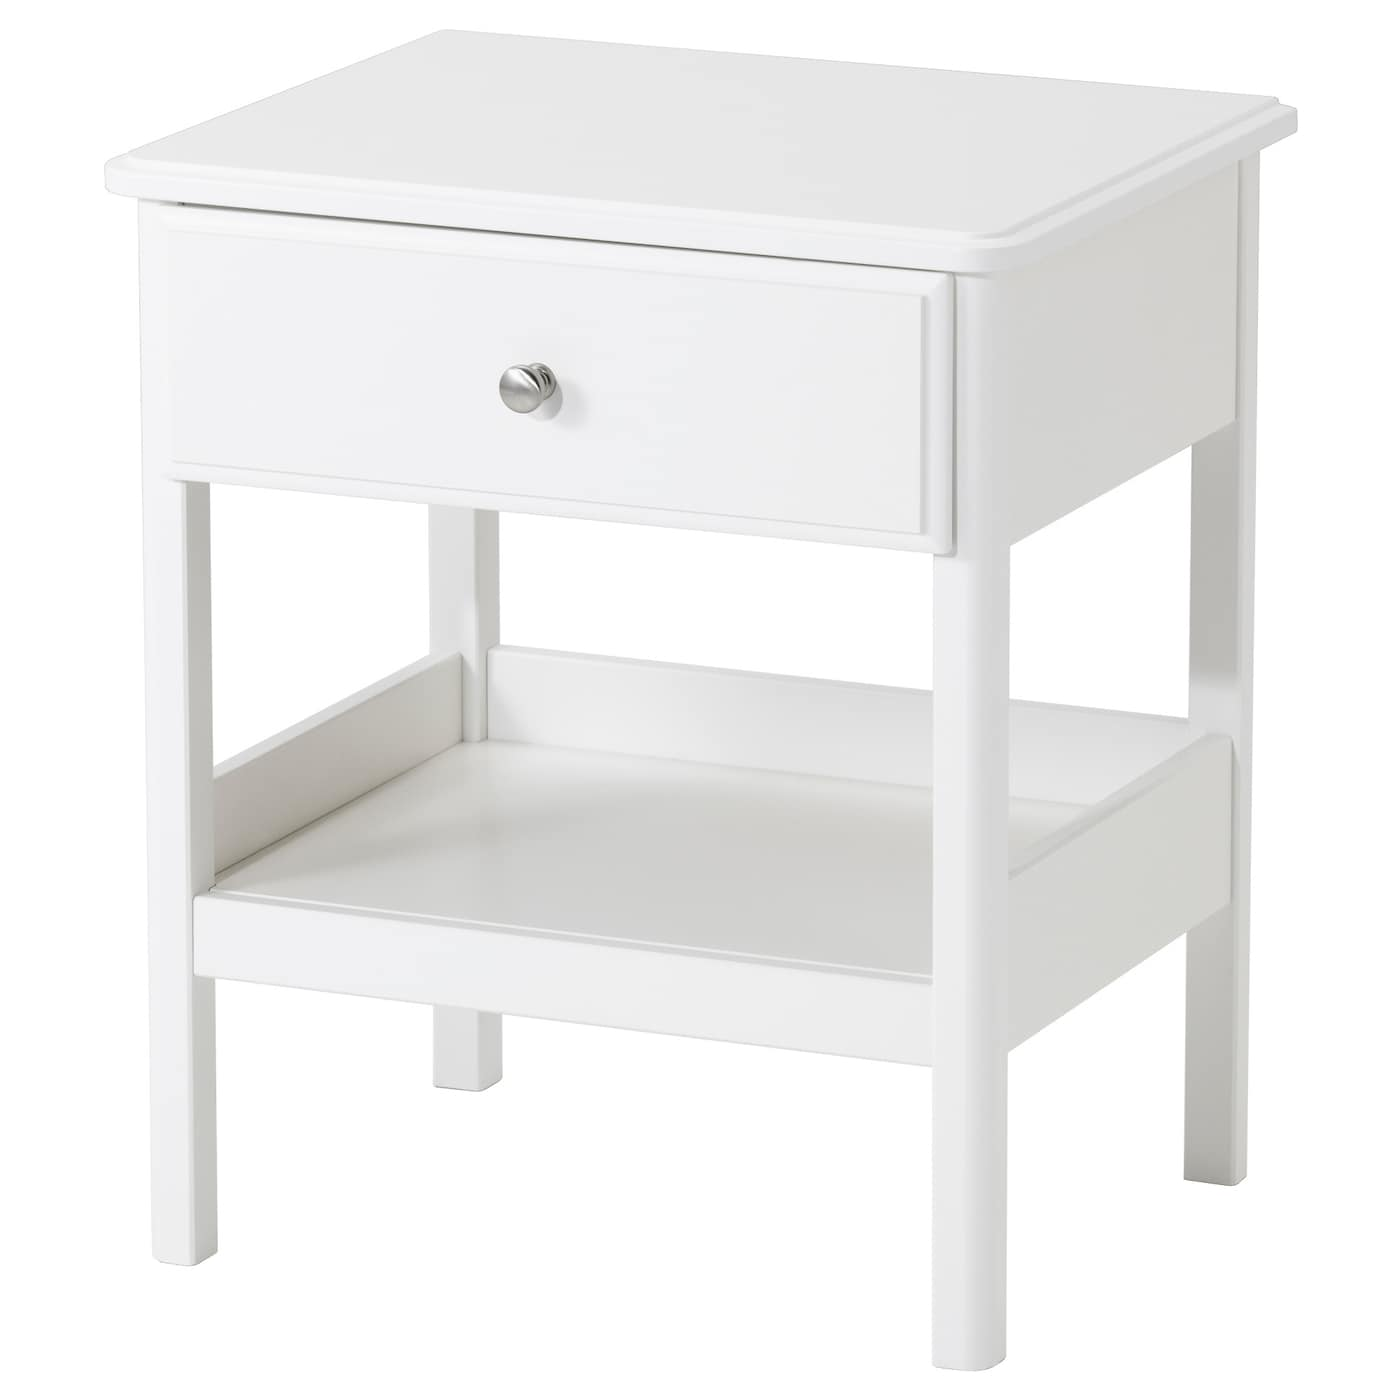 IKEA TYSSEDAL bedside table Smooth running drawer with pull-out stop.